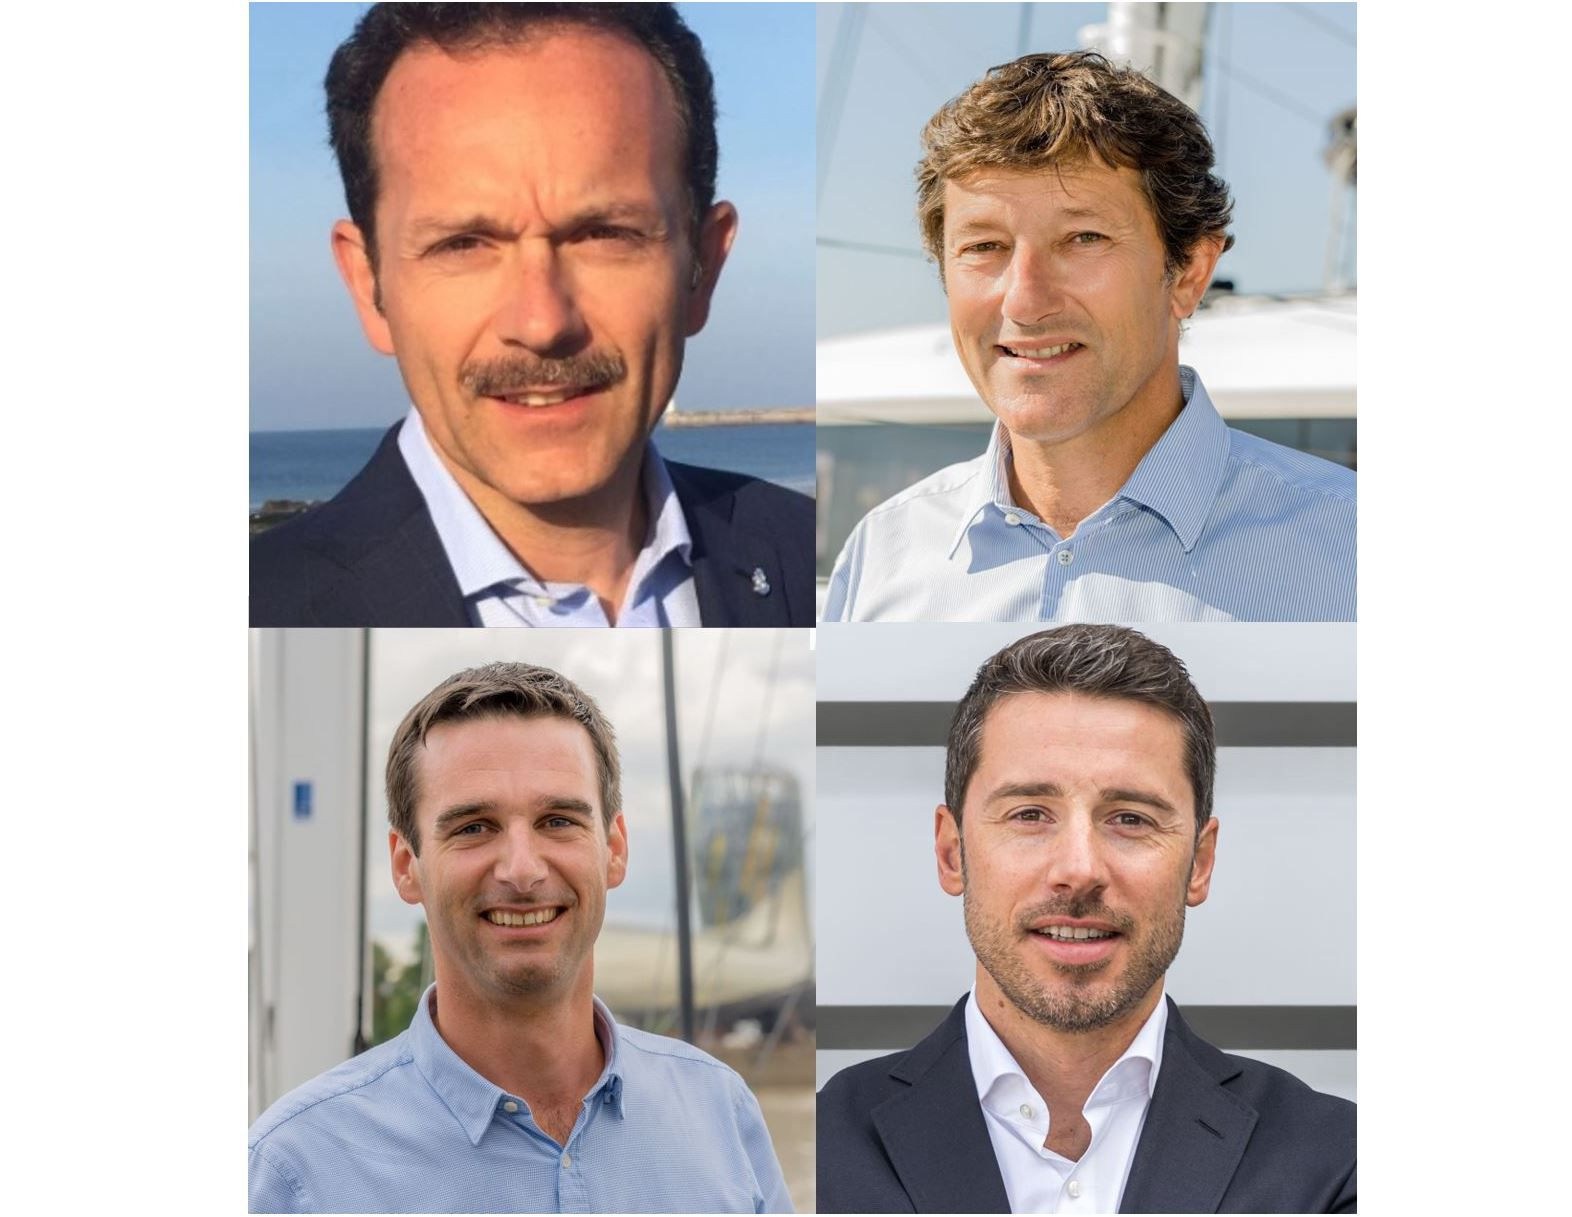 From left to right and top to bottom: Luca Brancaleon, Yann Masselot, Thomas Gailly and Clément Himily